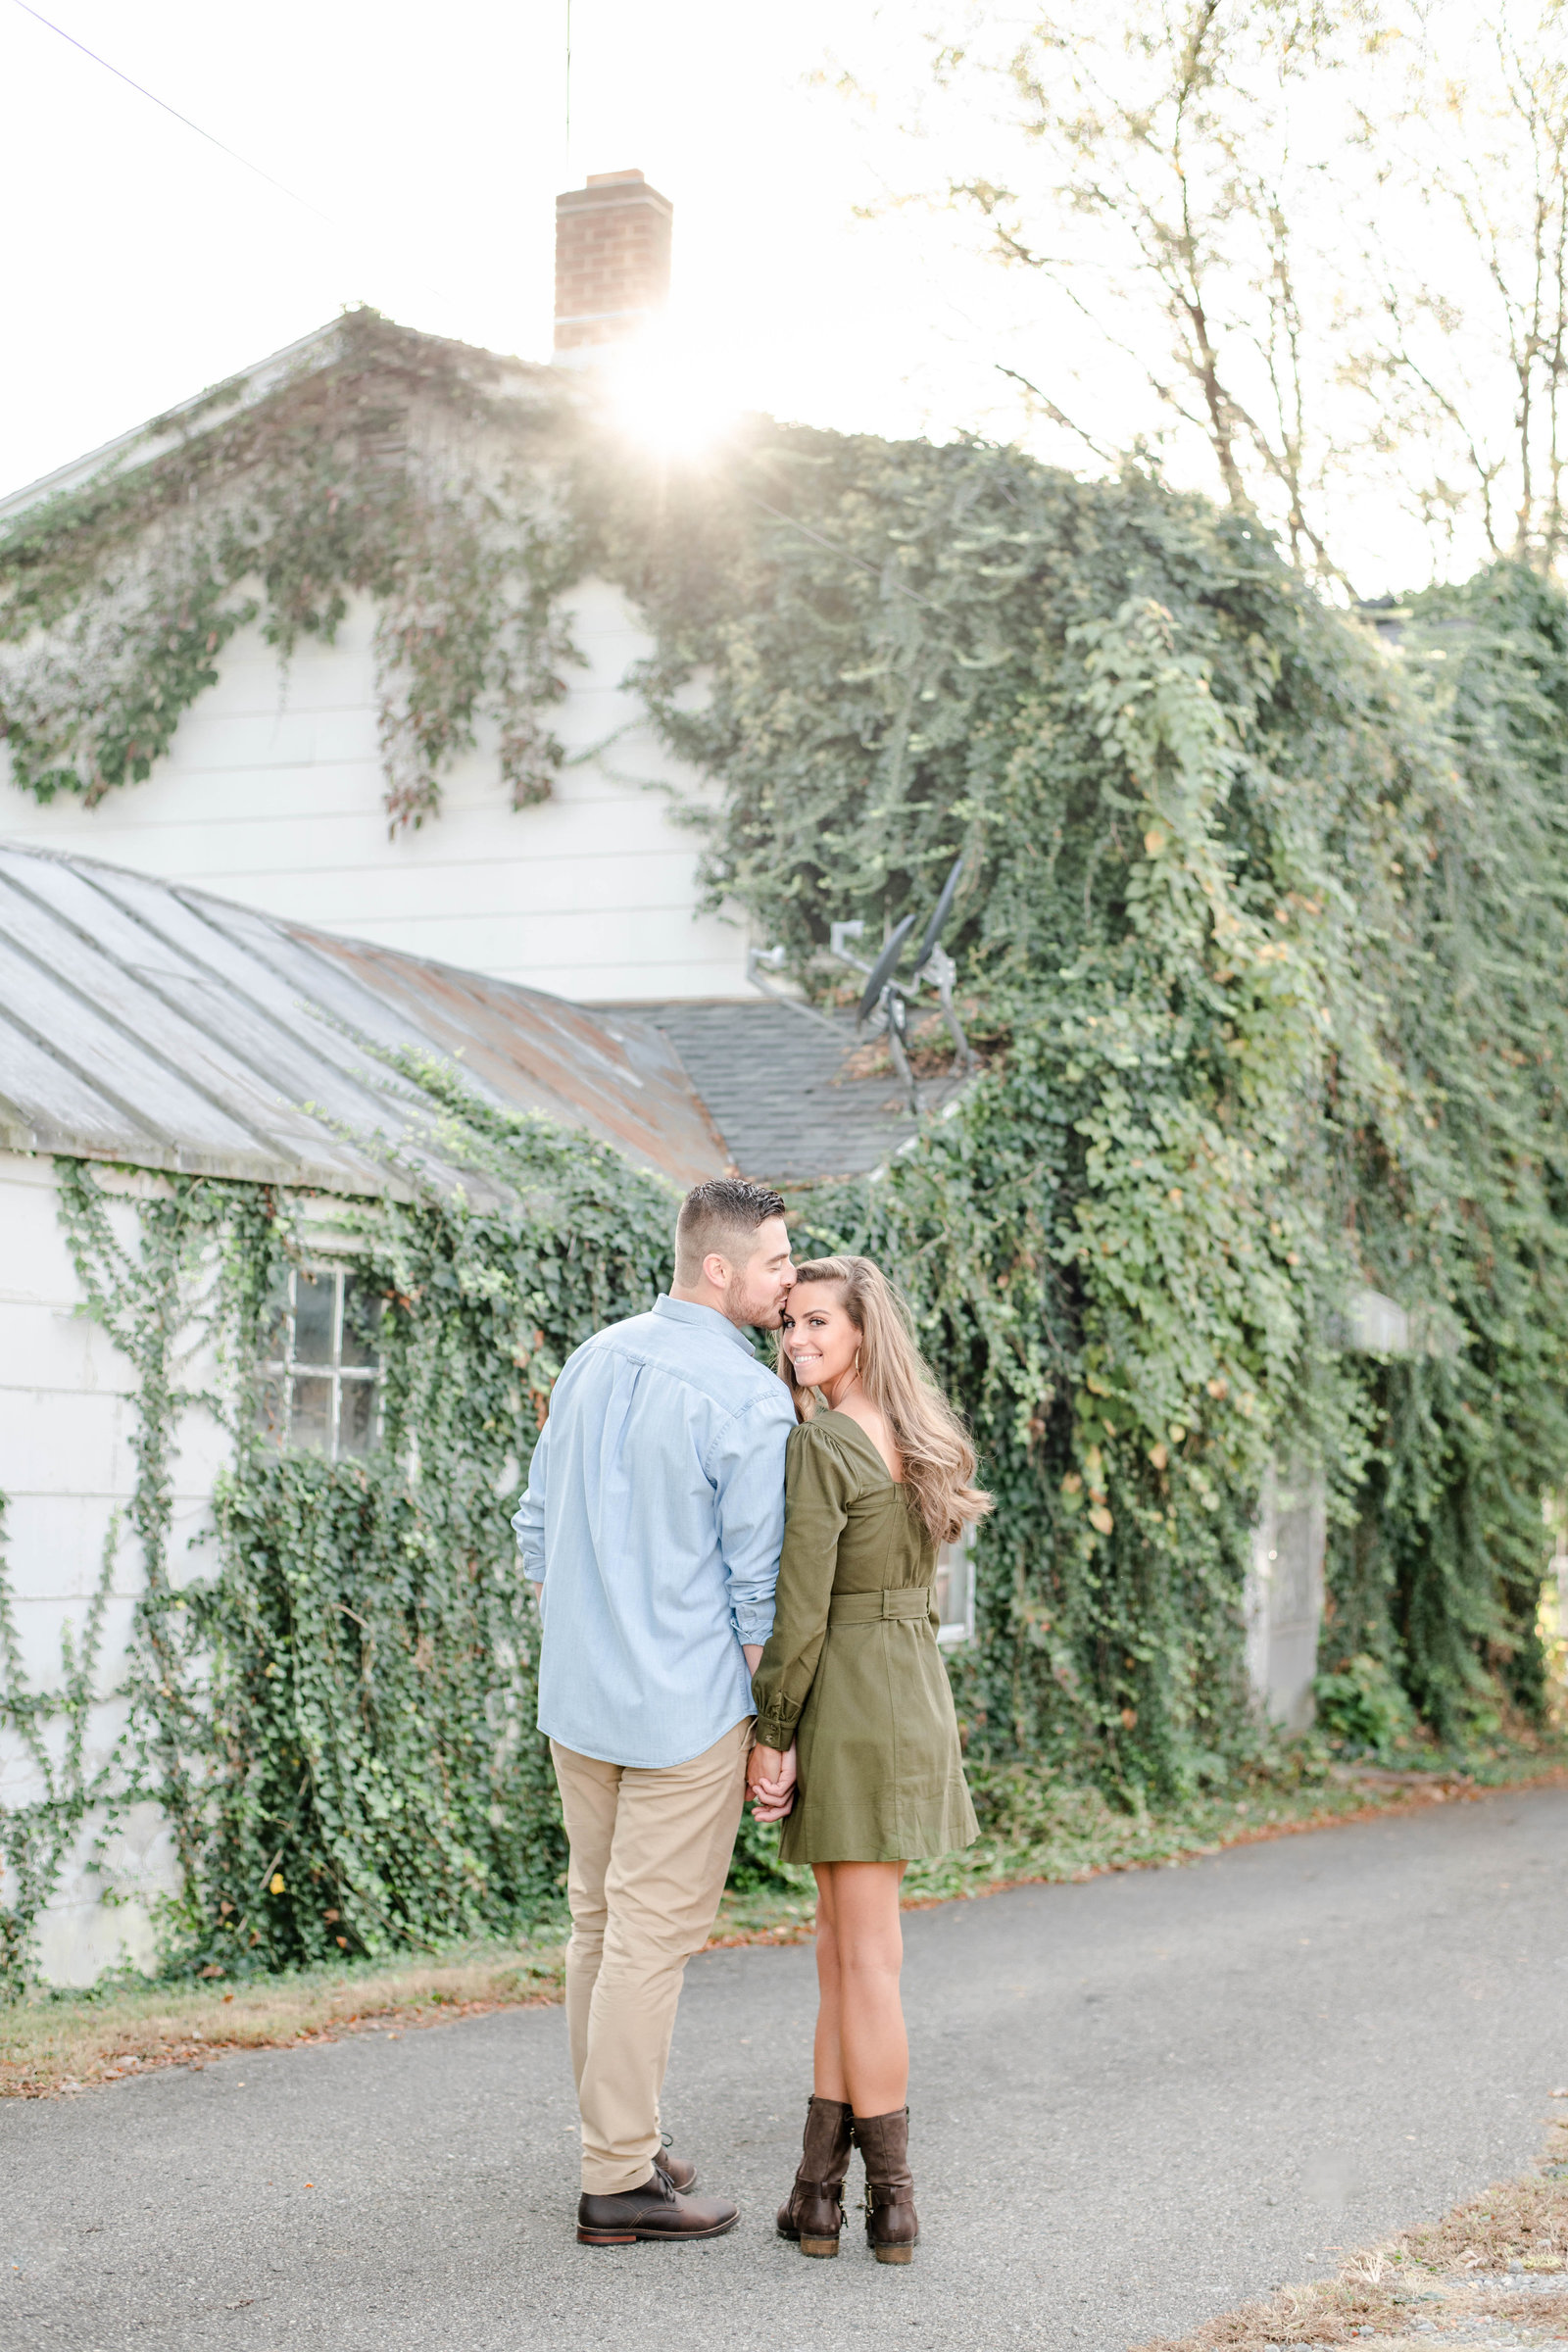 Cassidy Alane Photography-Katie & Matt - Dayton-Cincinnati-Columbus-Springboro-Ohio Engagement-Wedding Photography01